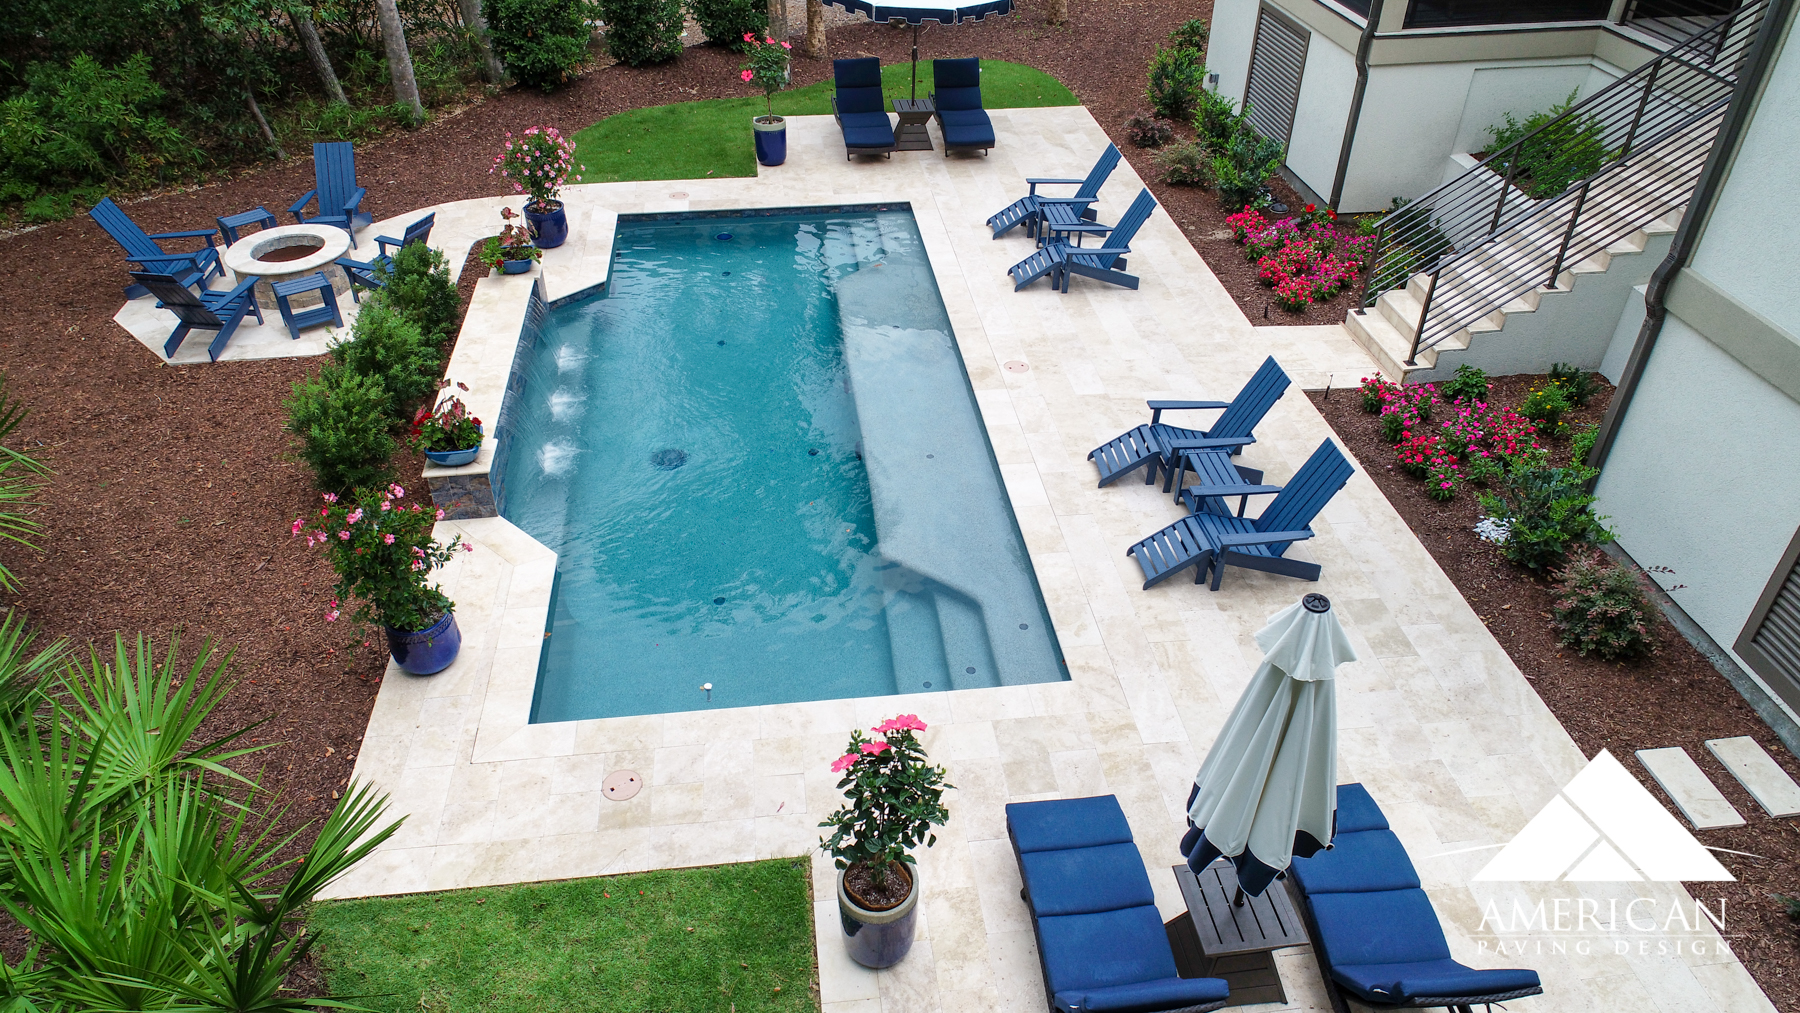 Travertine Installation  - Travertine is the perfect, natural stone for any pool deck remodel. It's non-slip surface makes it easy to entertain on!